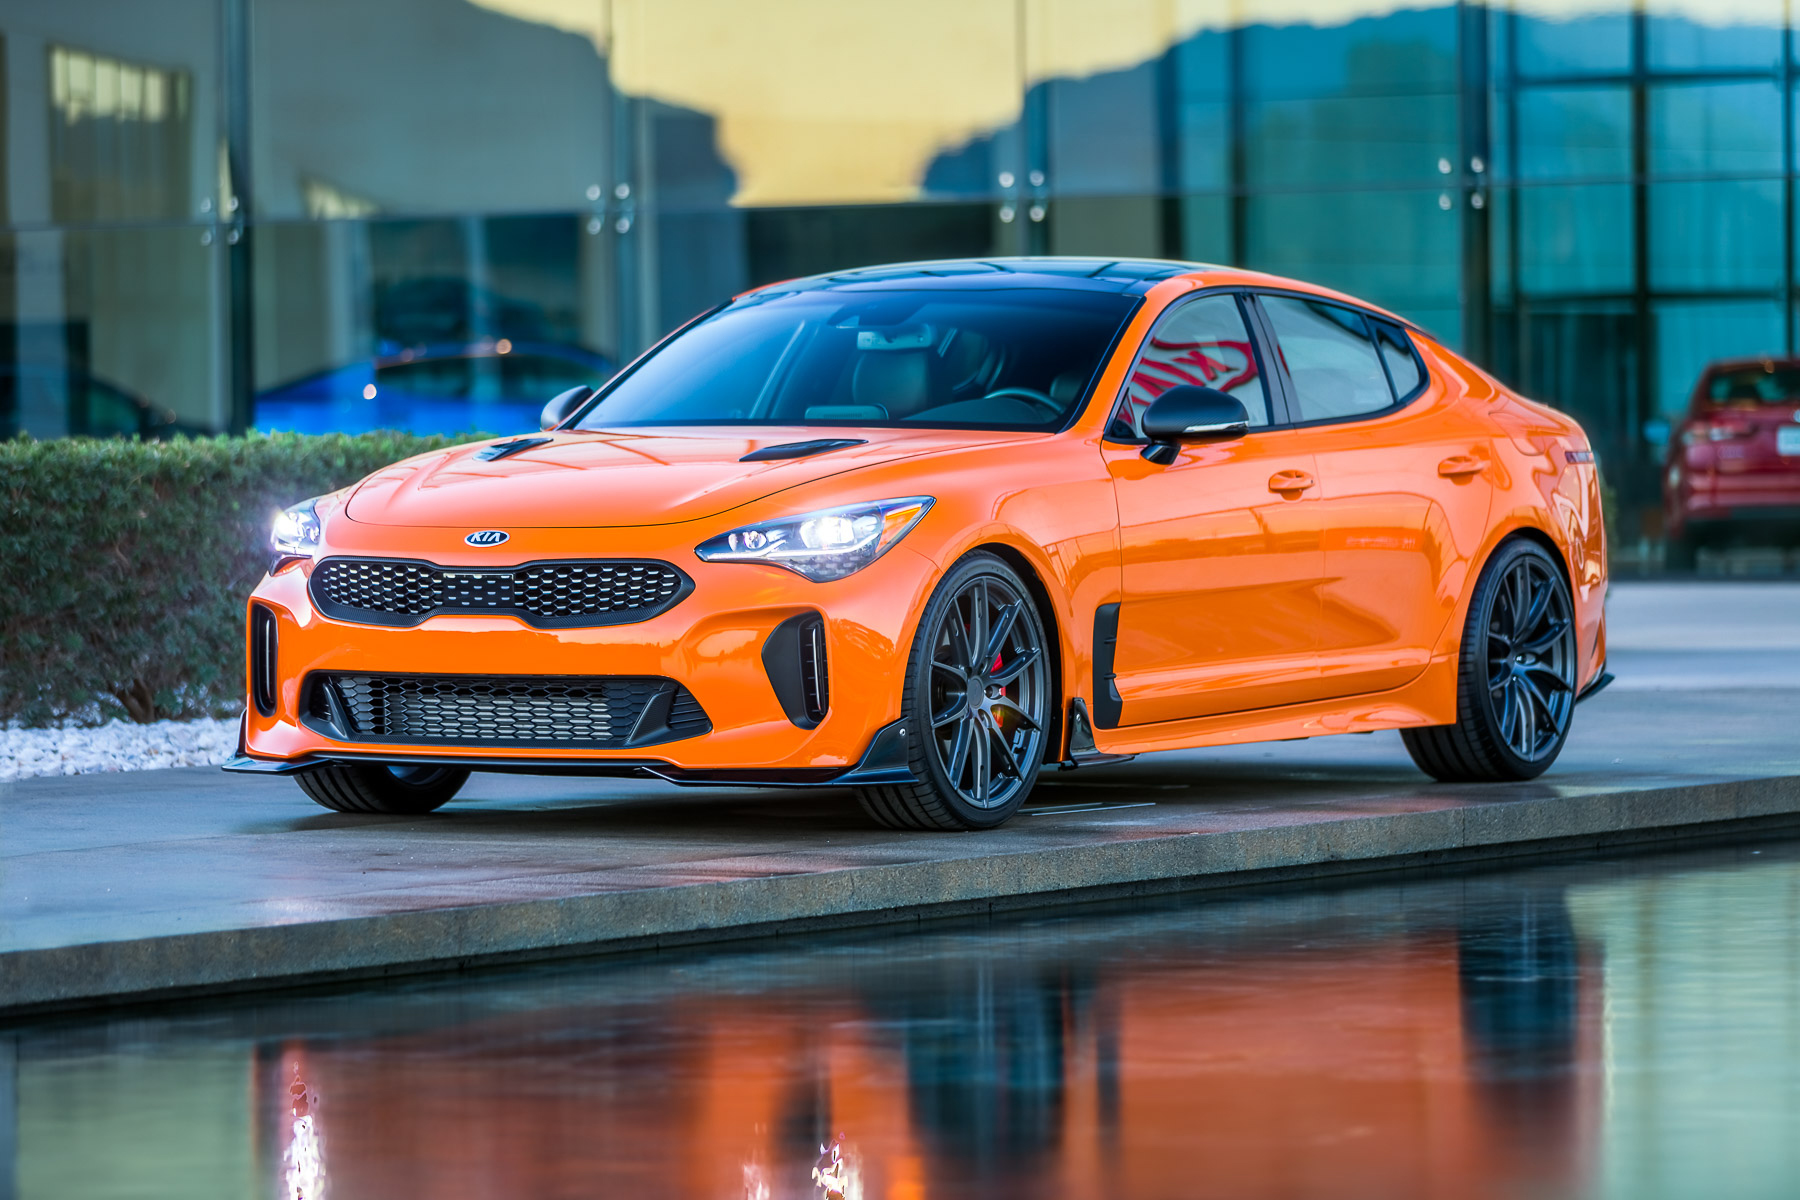 West Coast Customs Cars For Sale >> Kia Motors America Showcases Performance, Style And Luxury